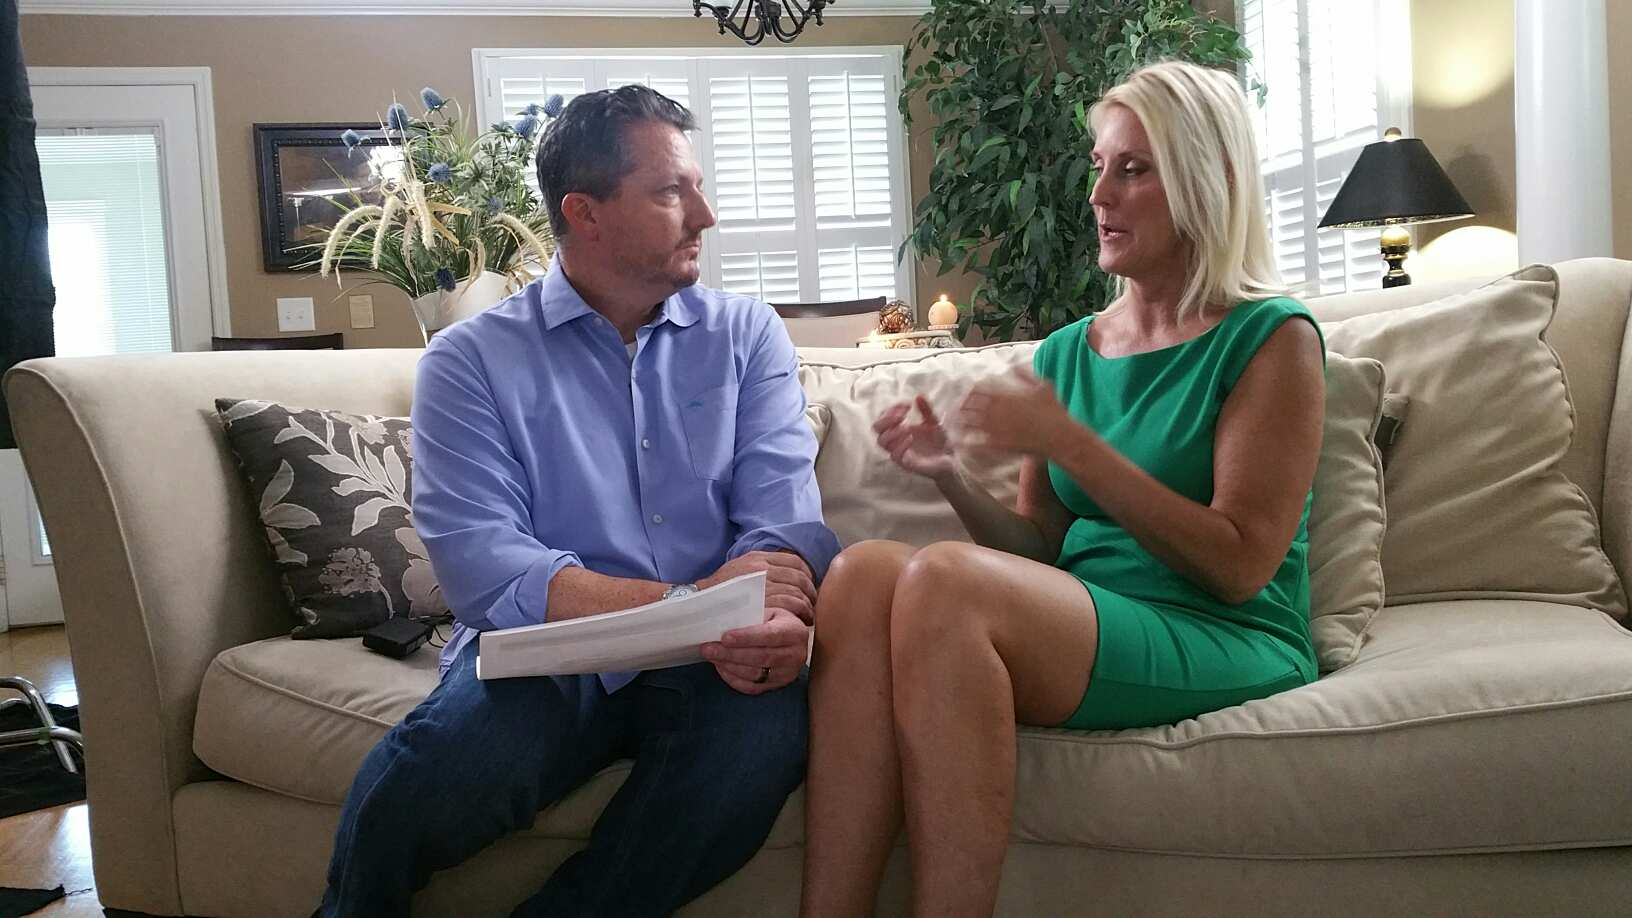 Host, Dr. Ben Barton interviewing me for The Truth About ADHD Video Documentary Series